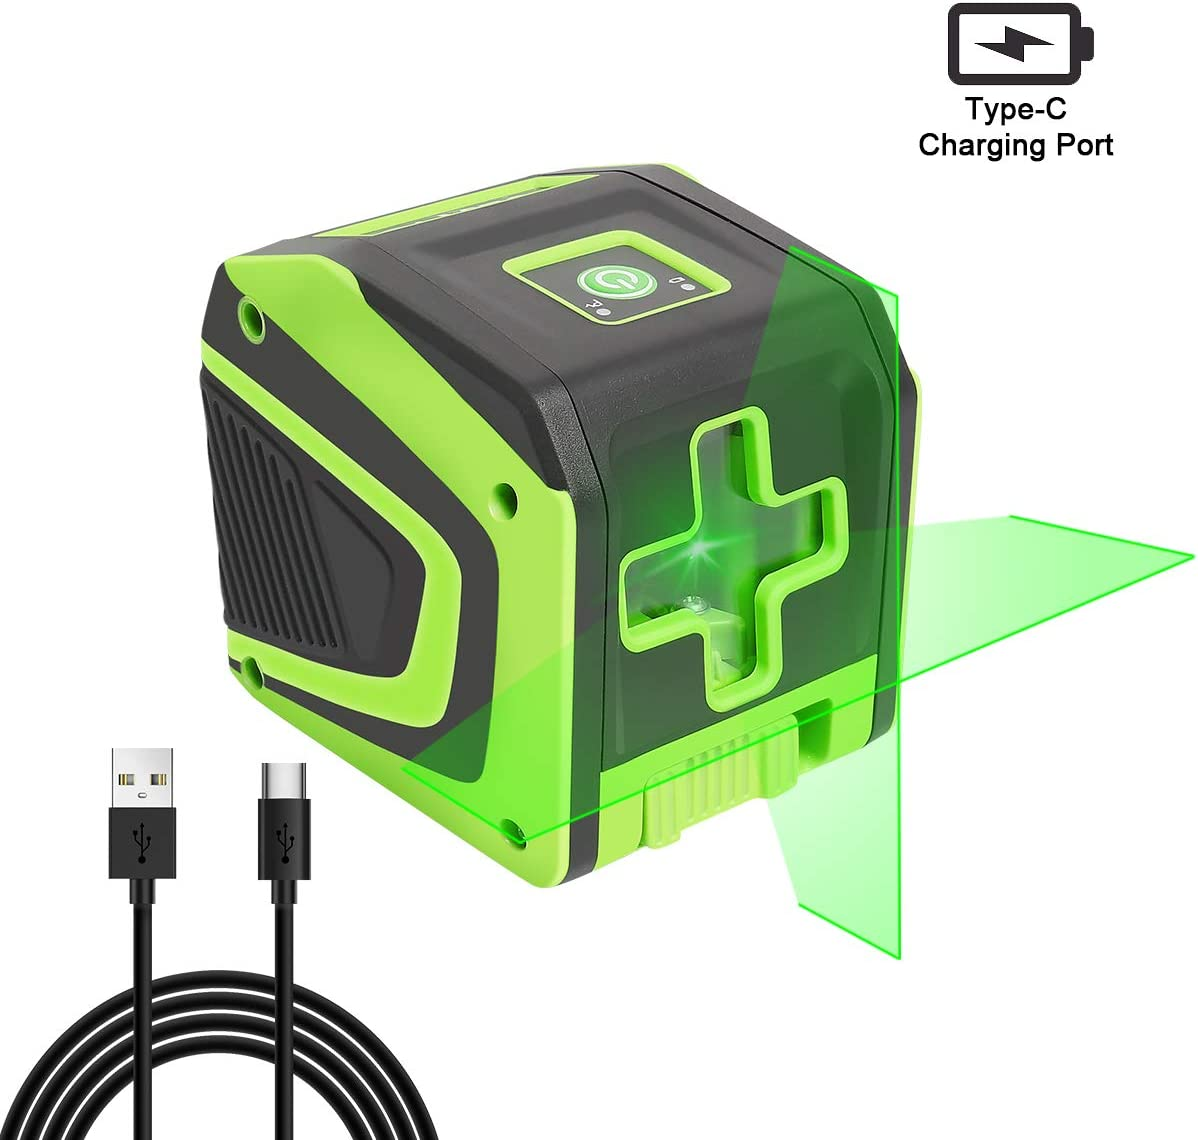 Huepar Self-leveling Laser Level with Rechargeable Li-ion Battery- Green Beam Cross Line Laser Level with Pulse Mode for Ceiling Floor Wall Application, Magnetic Metal Base Included – 5011GPro